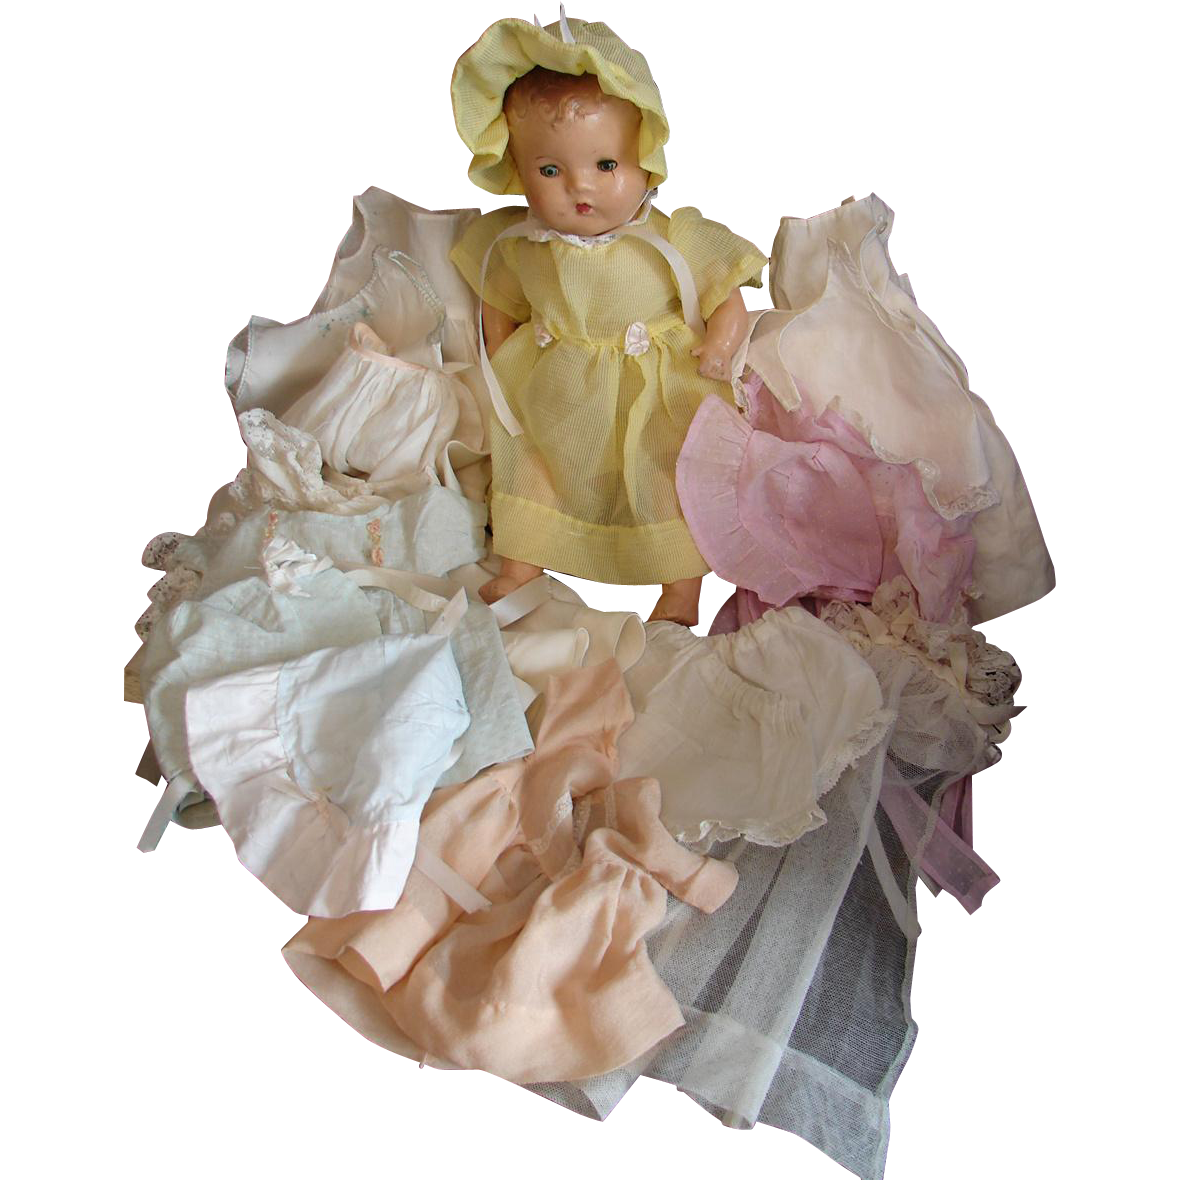 Vintage 1930s Mama Doll + 17 Pcs HAND MADE Clothing Wardrobe Trousseau Cloth Body Composition